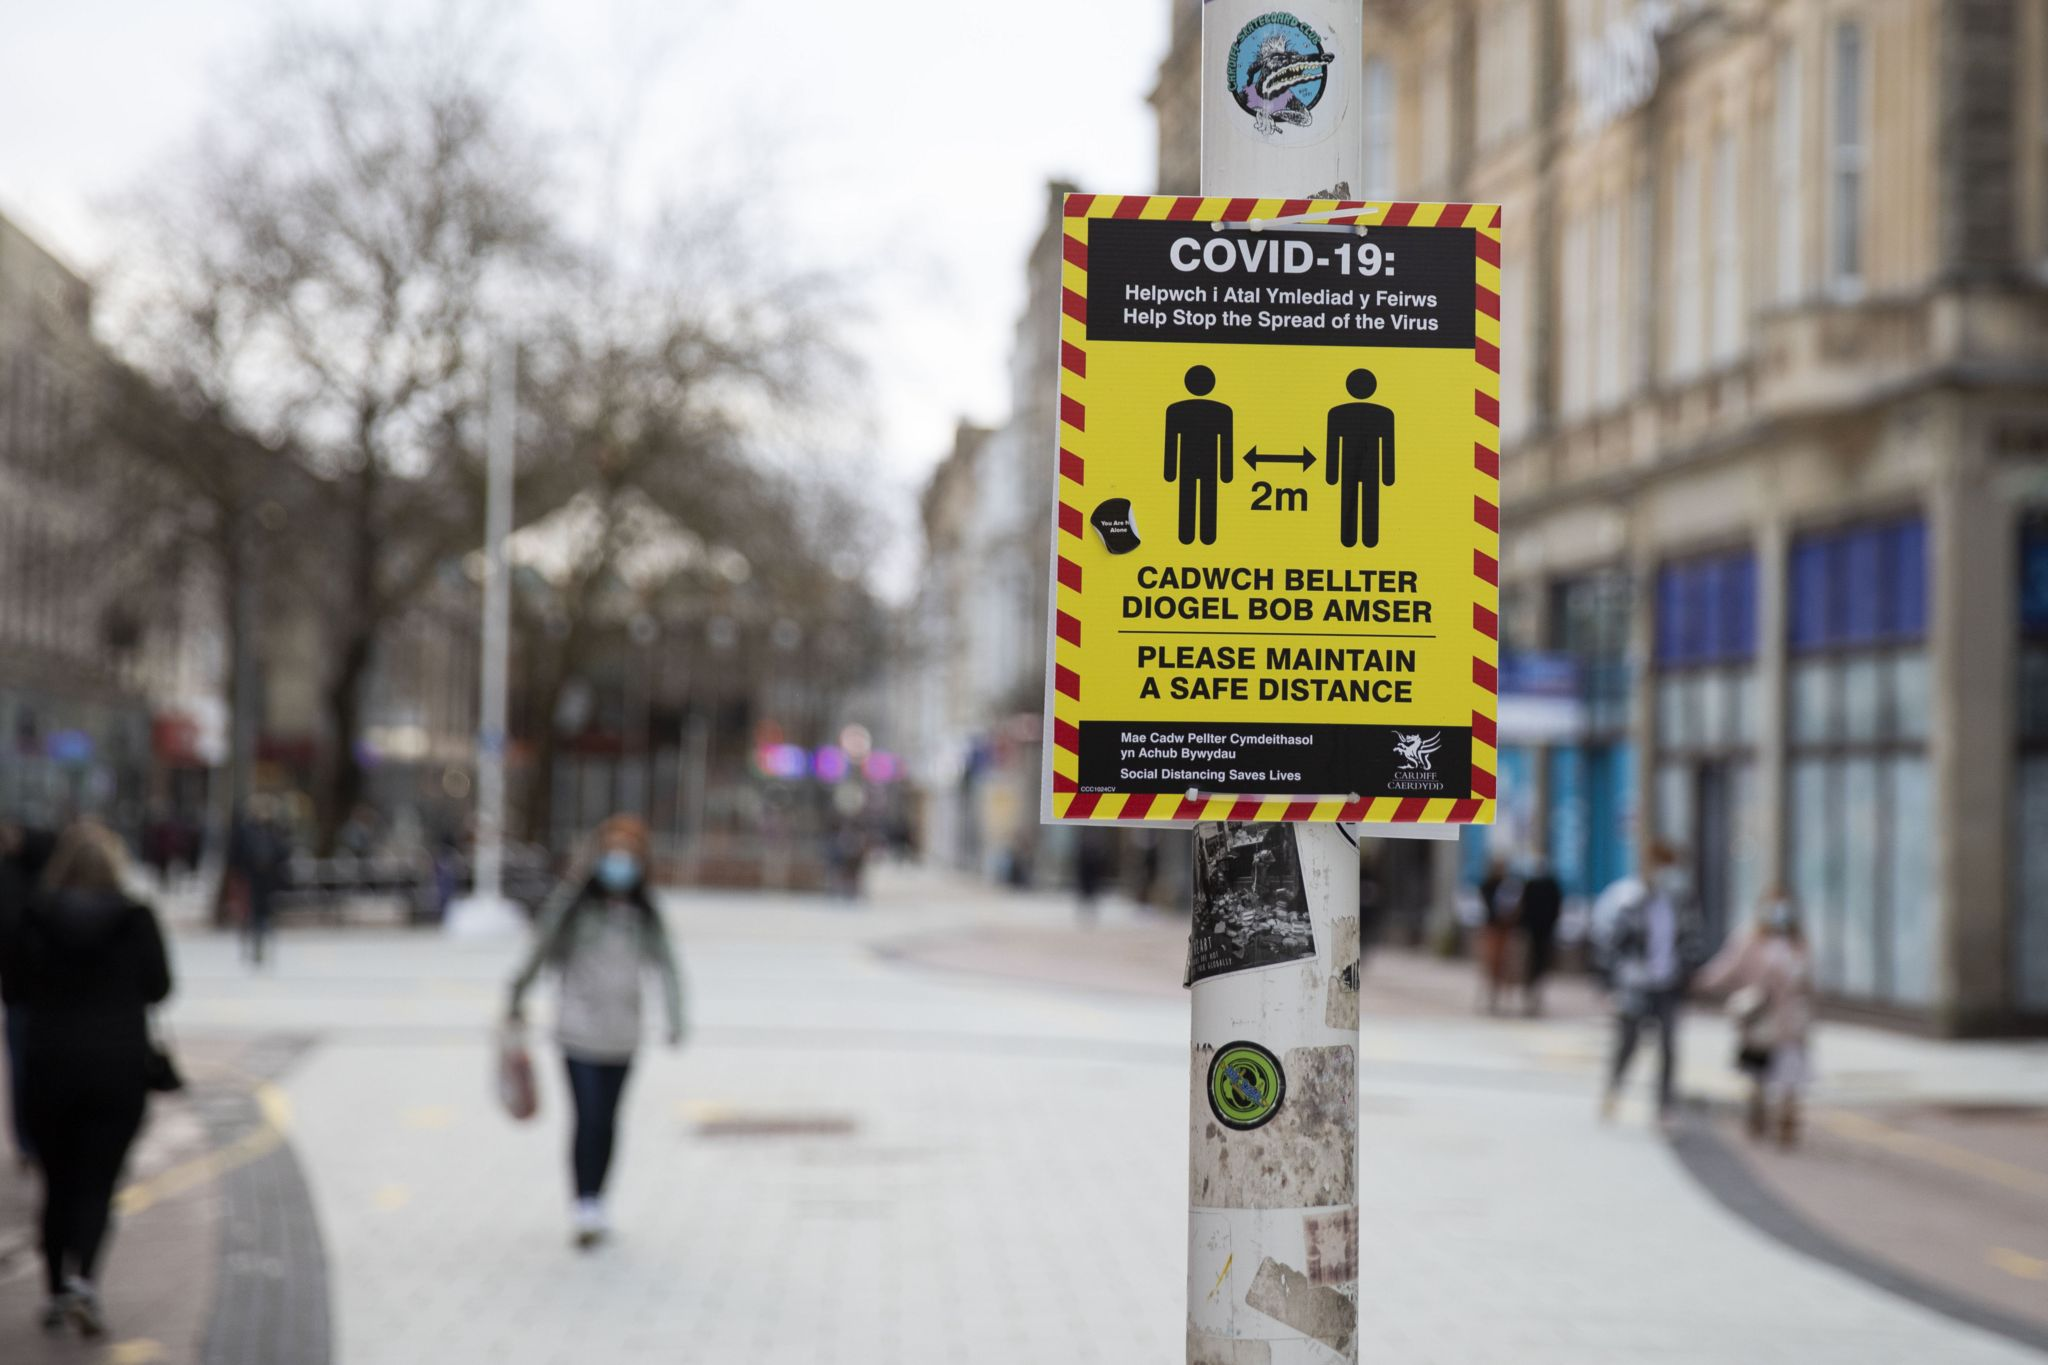 A Covid social distancing sign in Cardiff